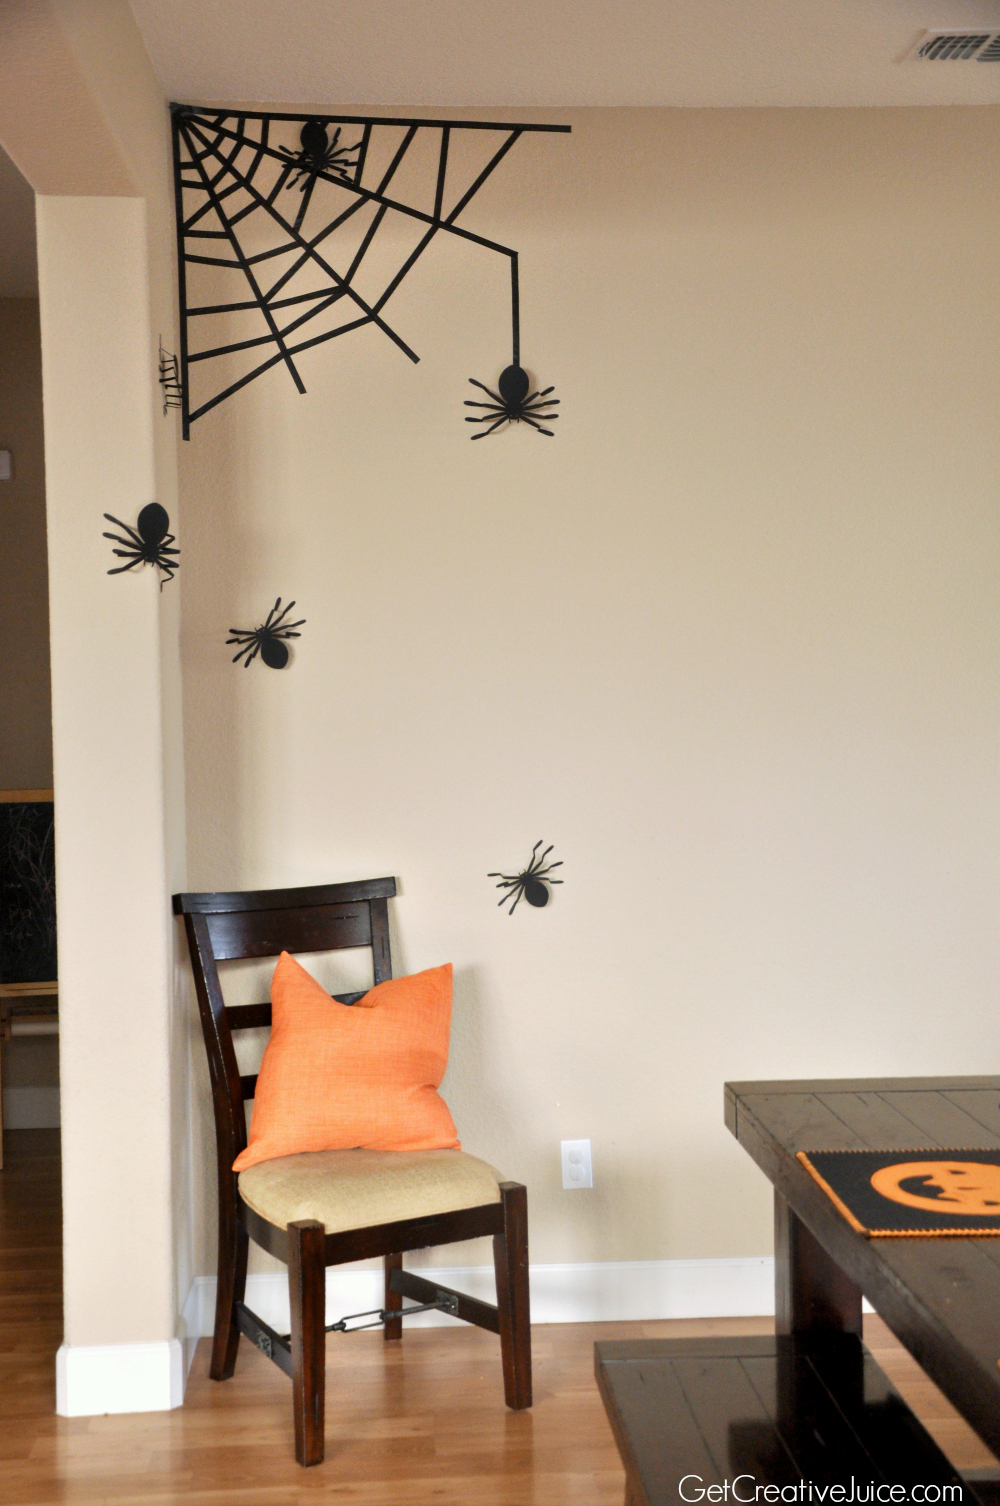 Halloween decorations home tour quick and easy ideas washi tape spider web wall decor easy fast diy halloween decoration amipublicfo Choice Image